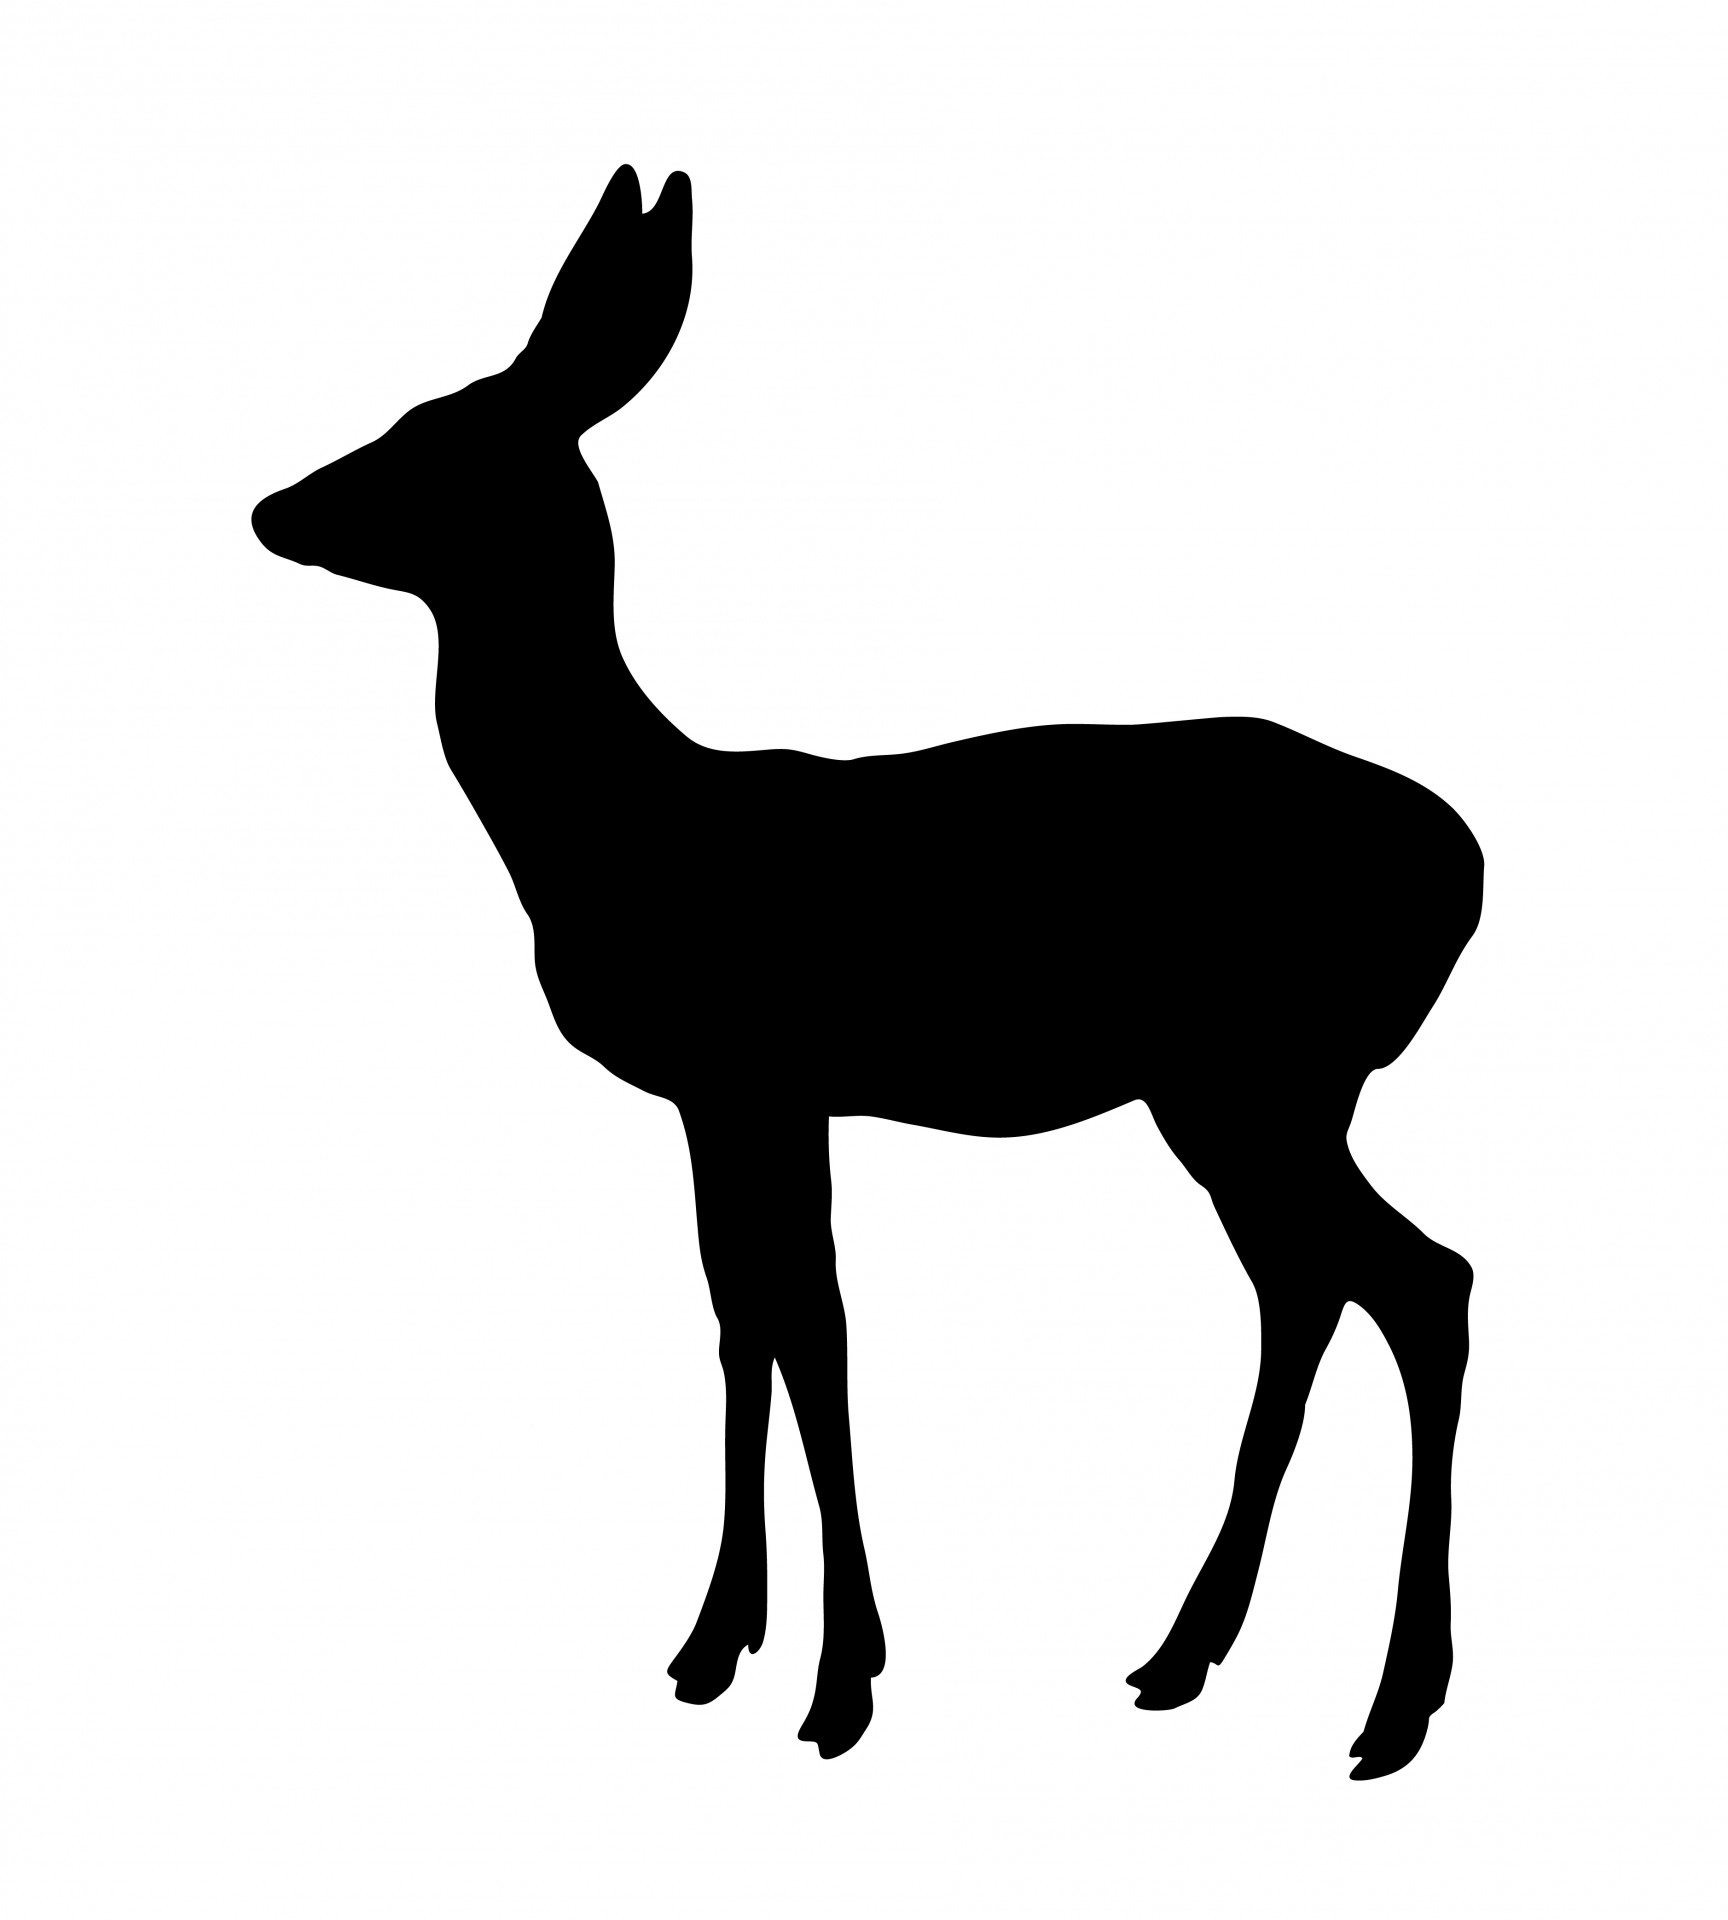 1728x1920 Deer Silhouette Free Stock Photo